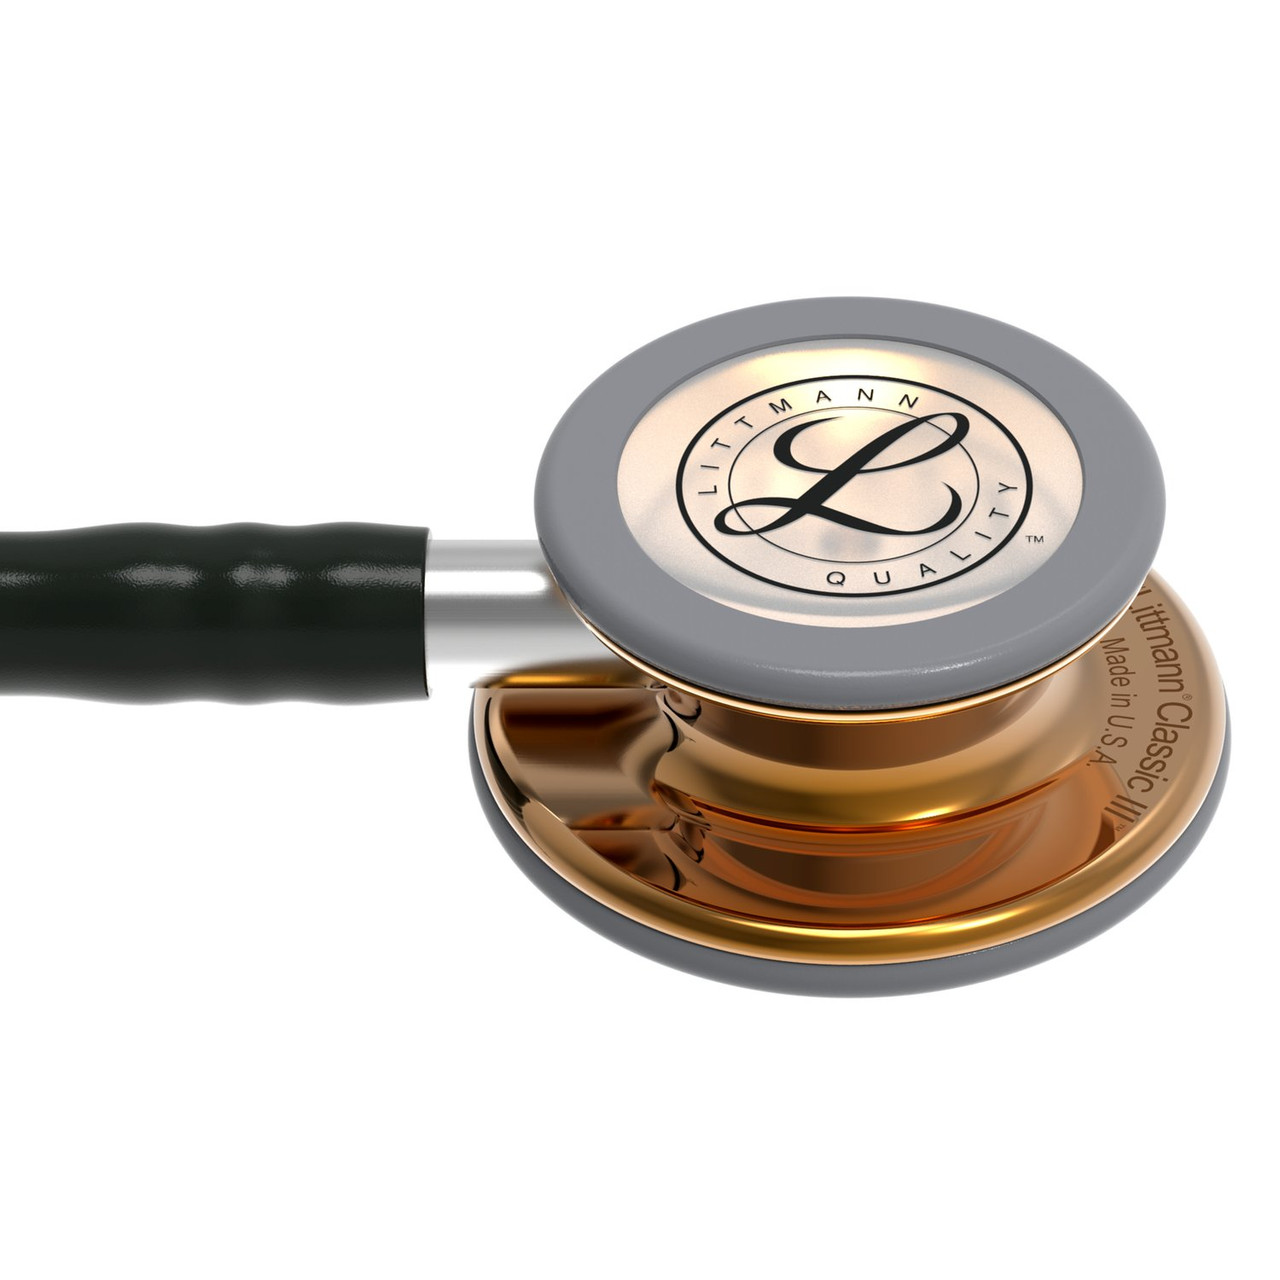 Littmann Classic III Stethoscope, Black HP Copper, 5646